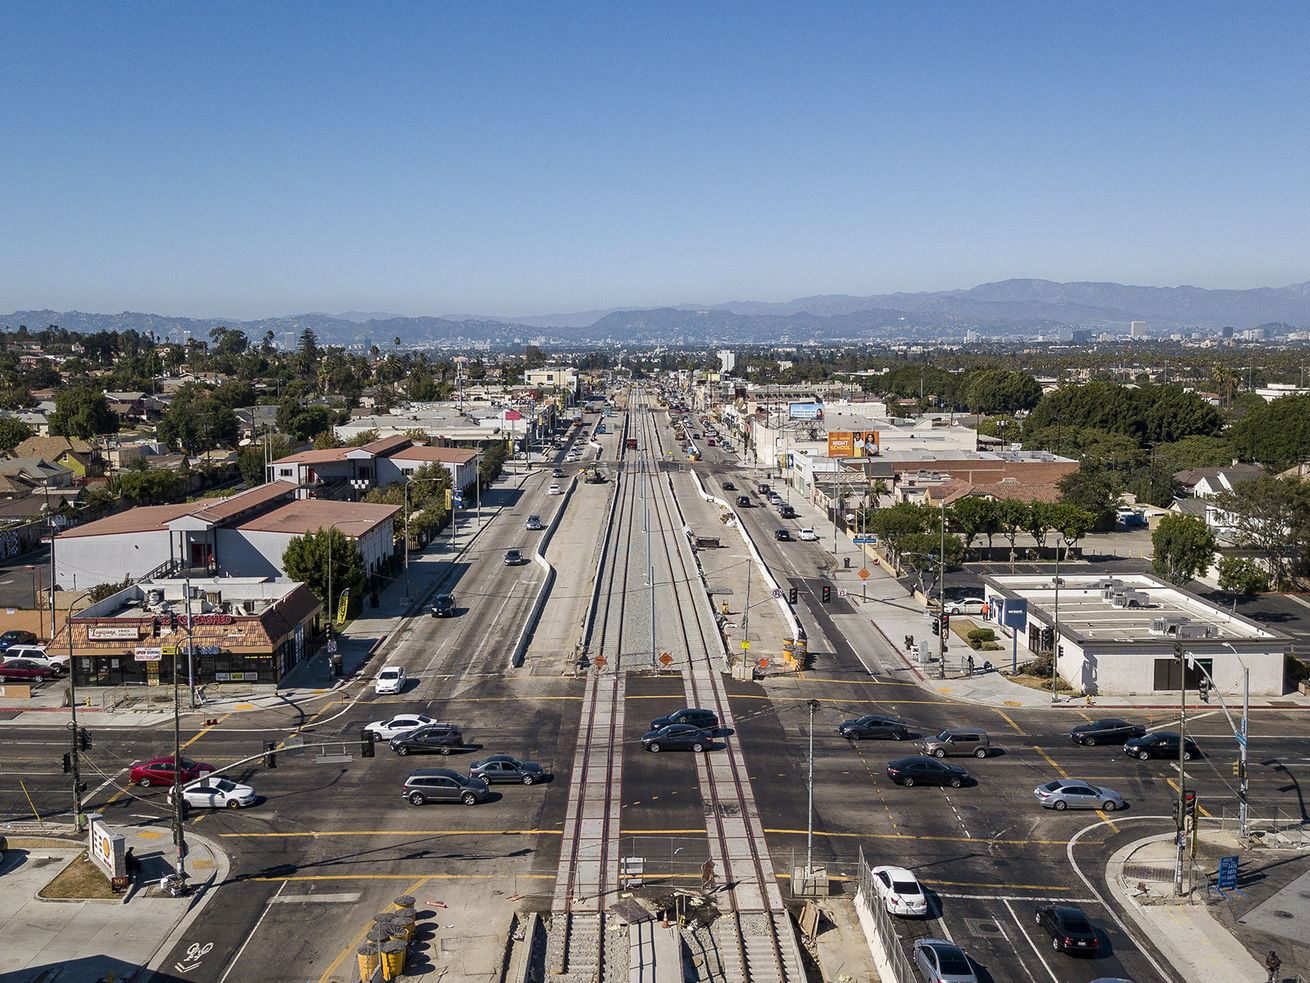 Looking north at the intersection of Crenshaw and Slauson, which will be renamed Nipsey Hussle Square. Out of view on the southwest corner is the strip mall Hussle purchased in February.